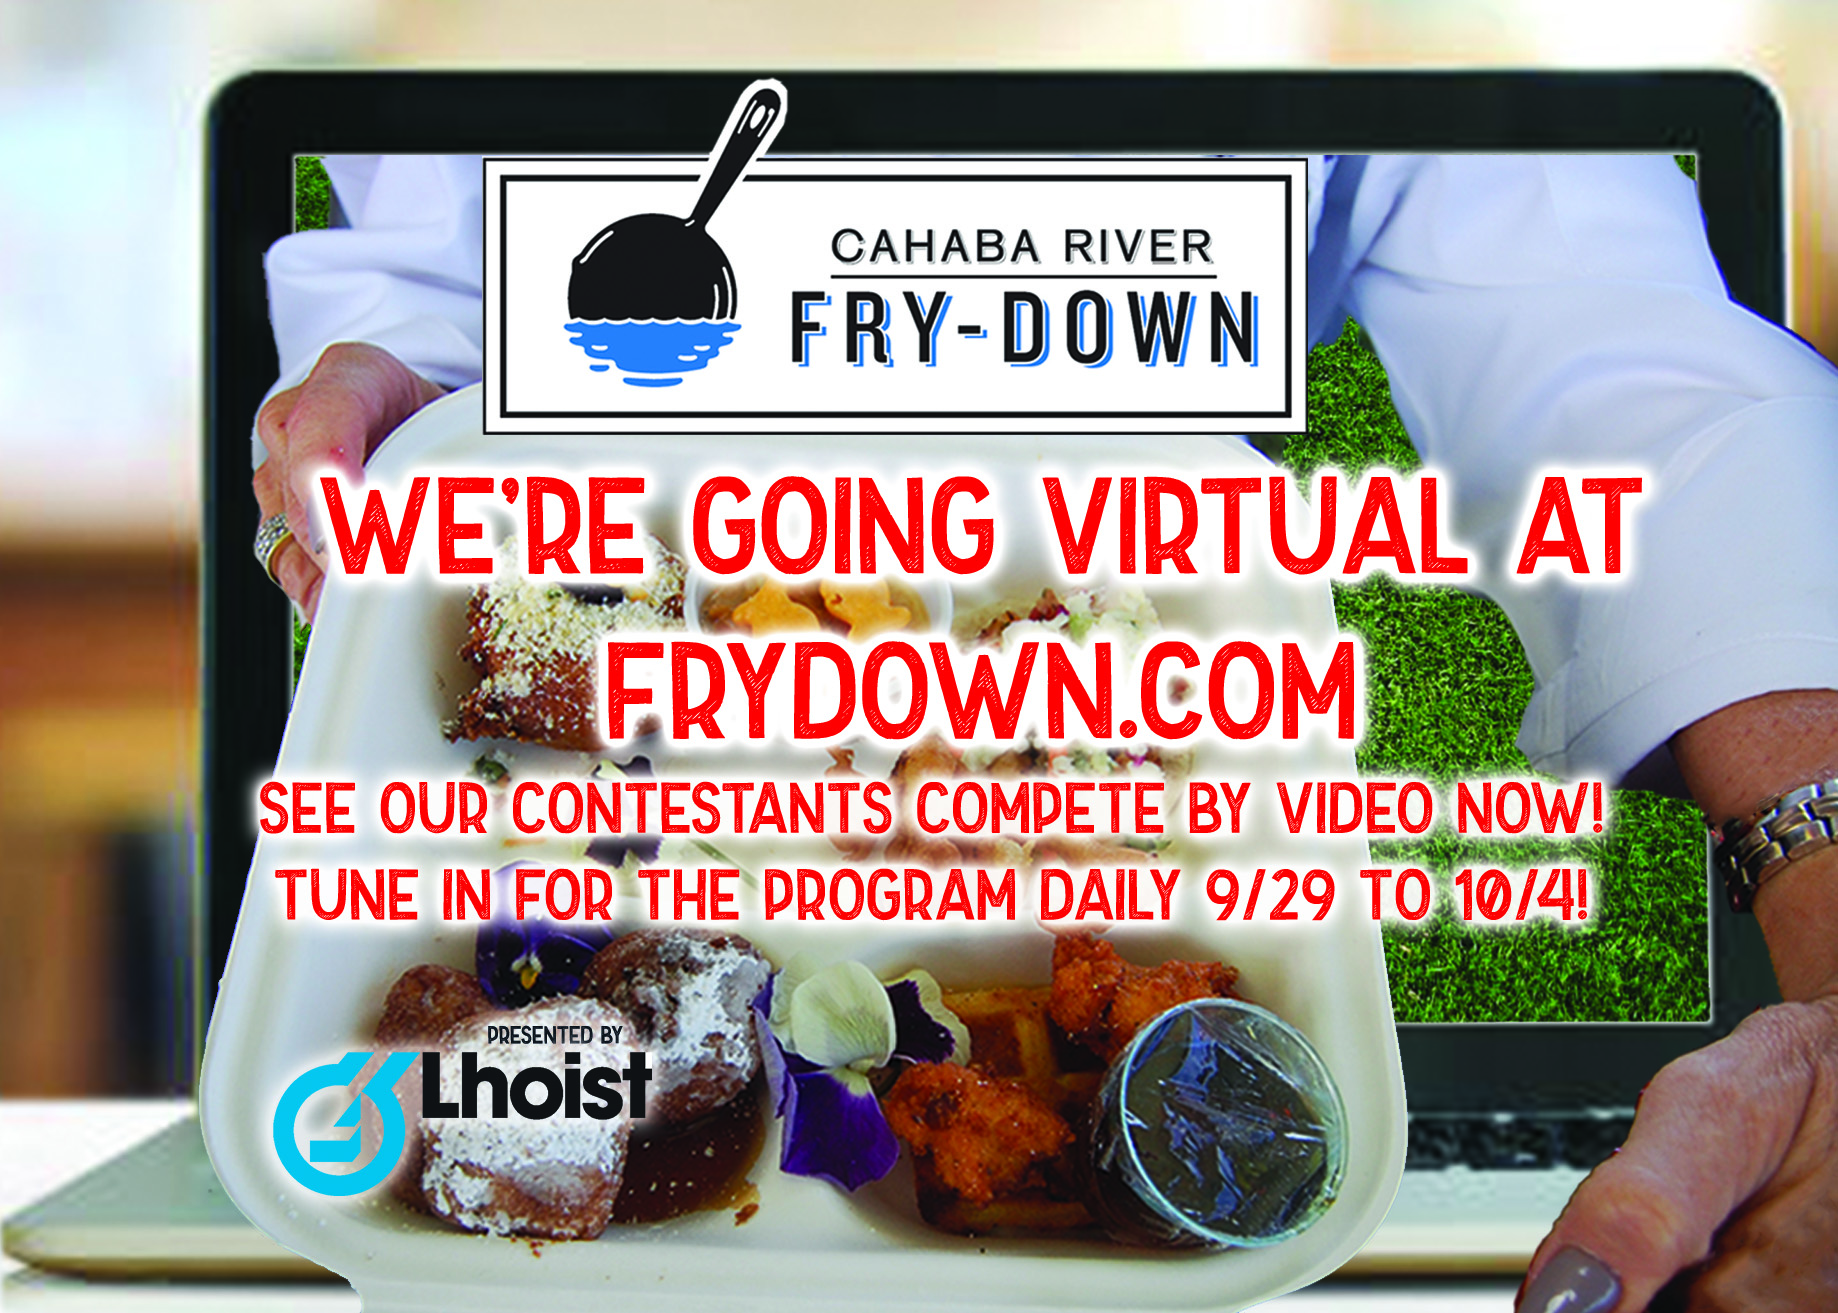 Fry-Down 2020 is going virtual!